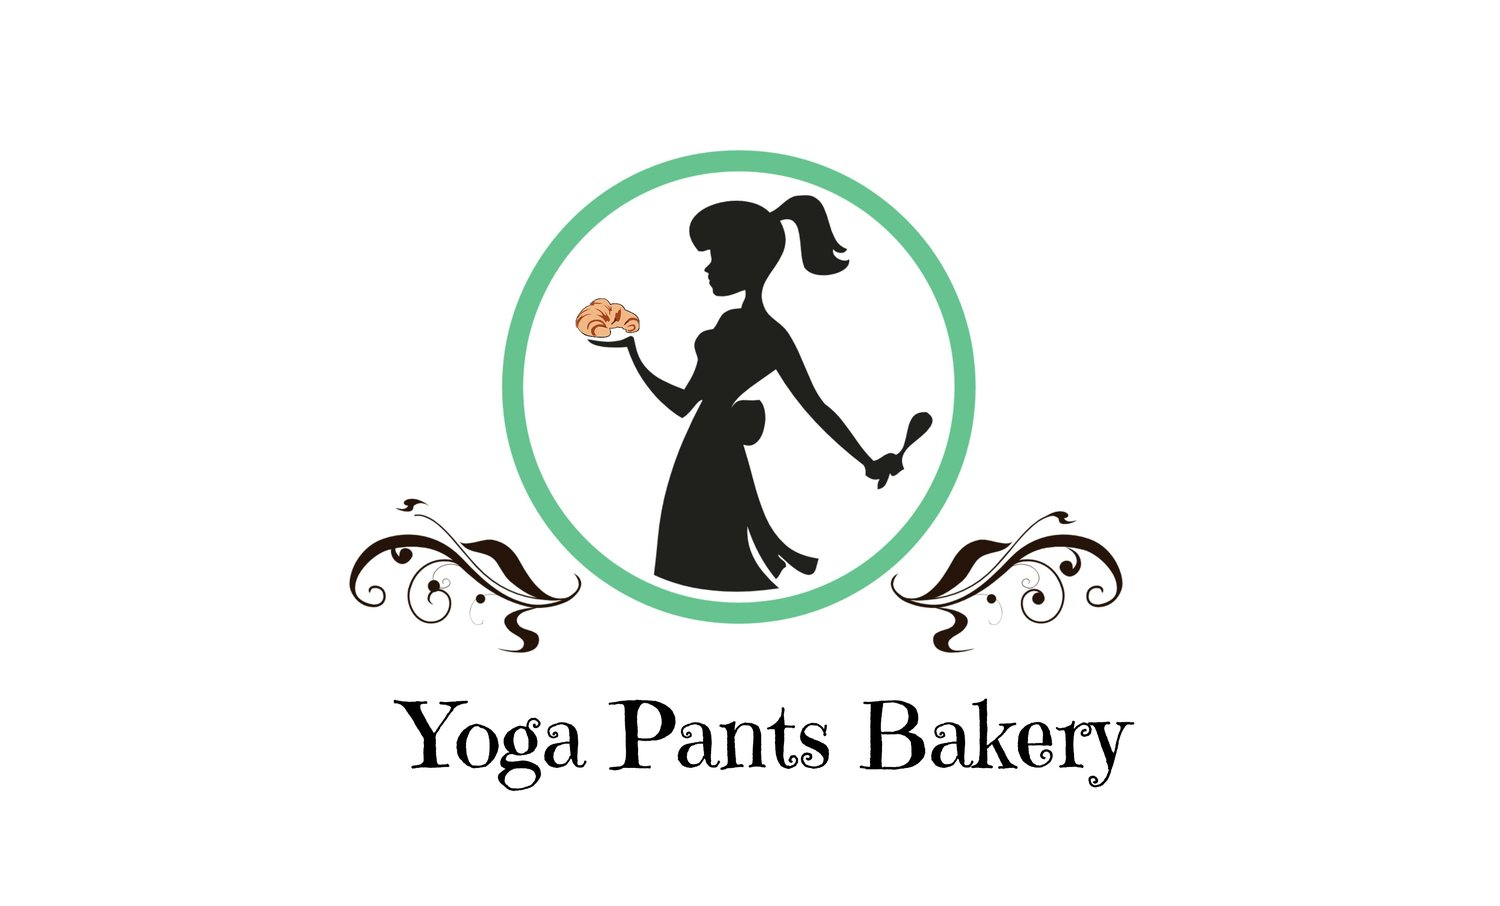 Yoga Pants Bakery